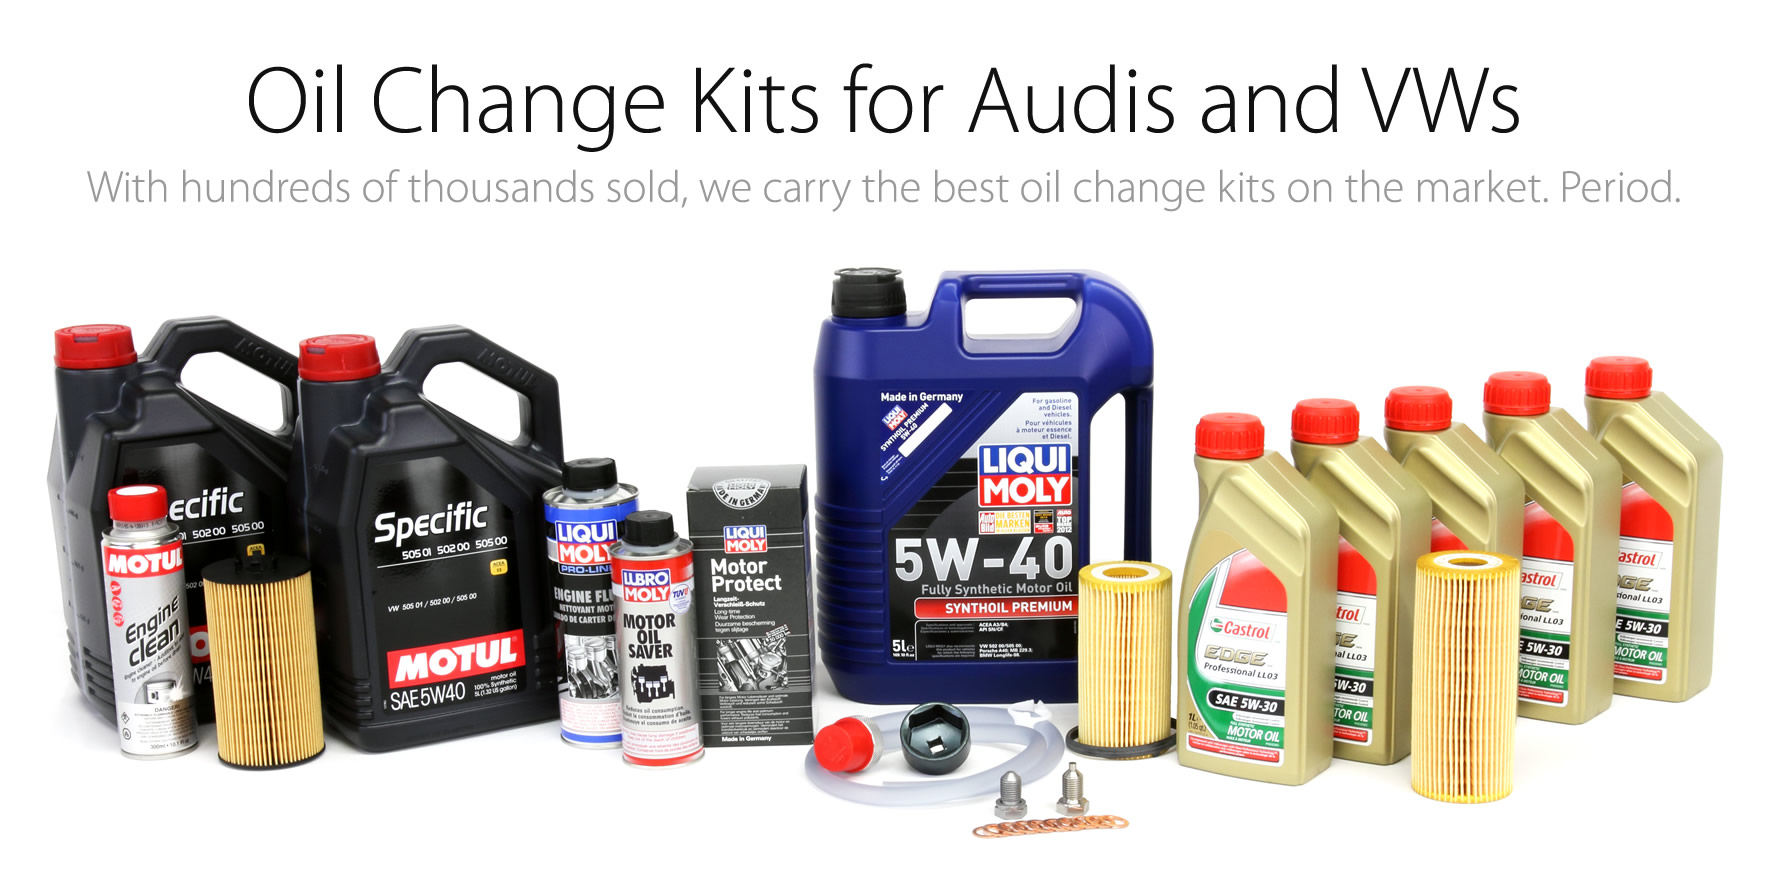 Oil Change Kits for Audis and VWs